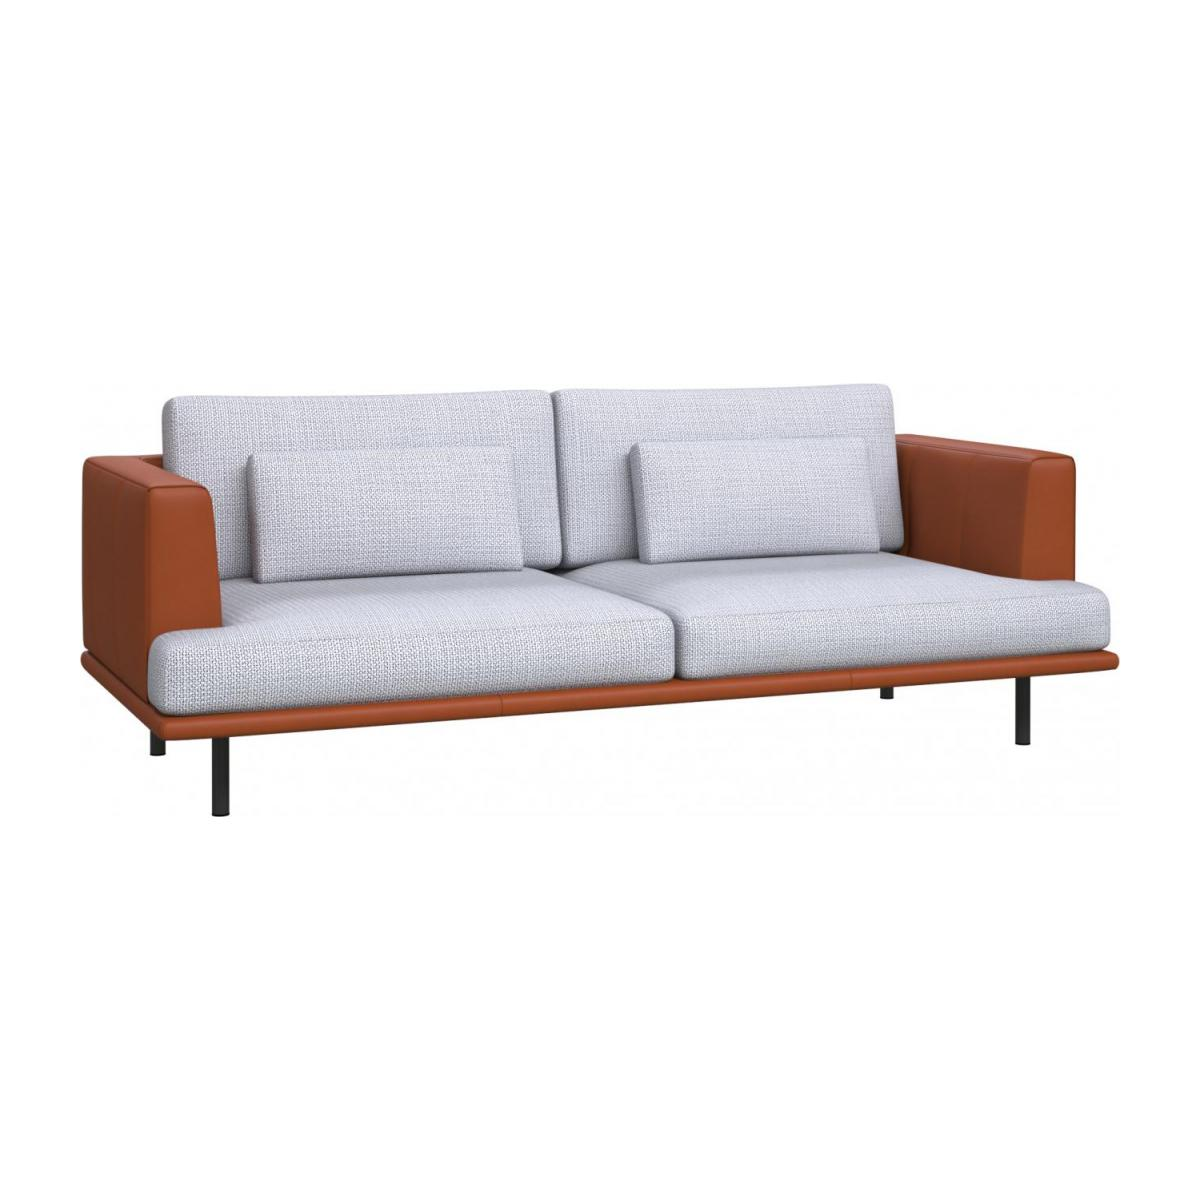 3 seater sofa in Fasoli fabric, grey sky with base and armrests in brown leather n°1